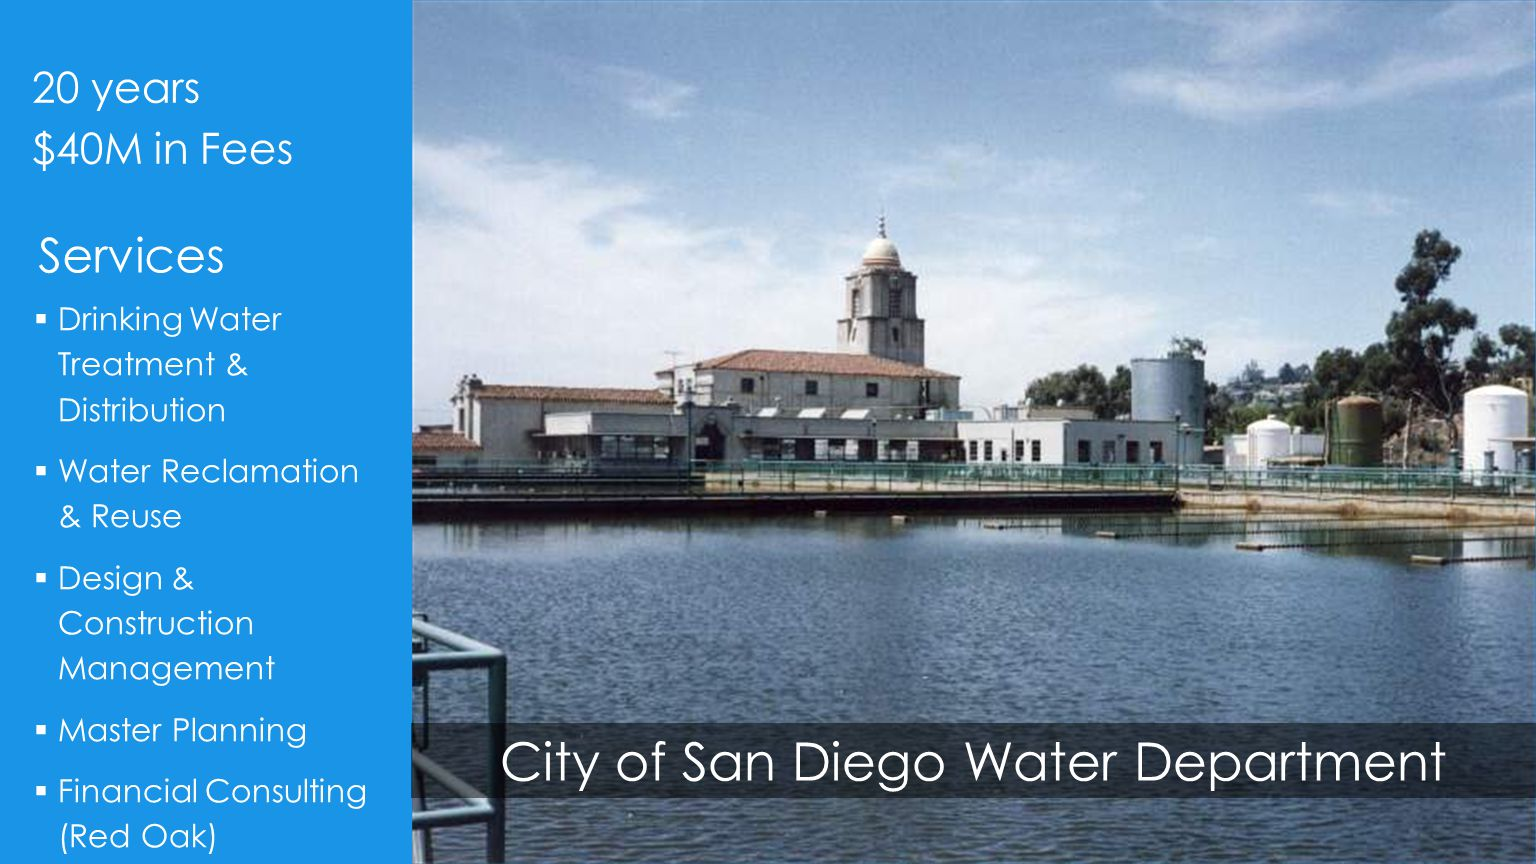 City of San Diego Water Department  Drinking Water Treatment & Distribution  Water Reclamation & Reuse  Design & Construction Management  Master Planning  Financial Consulting (Red Oak) 20 years $40M in Fees Services